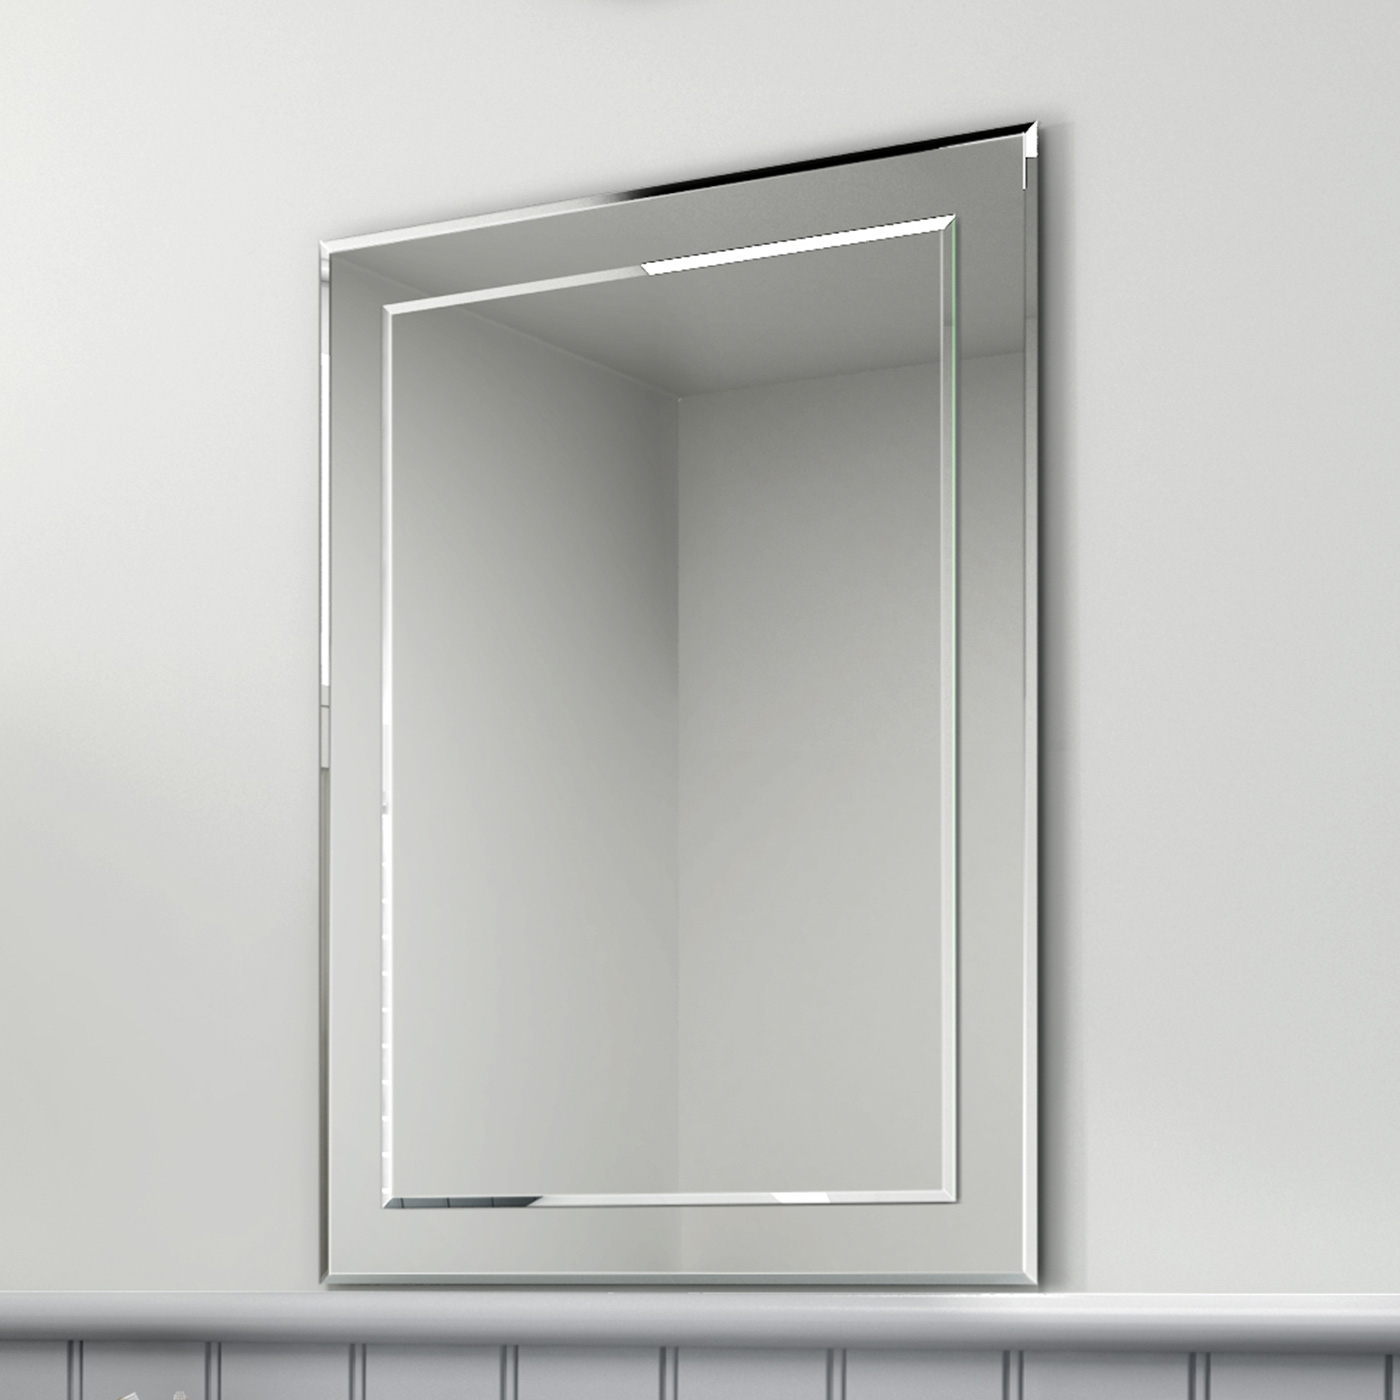 500x700mm Rectangular Glass Bevelled Edge Bathroom Mirror Mc148 Ebay Within Bevel Edged Mirror (Image 1 of 15)